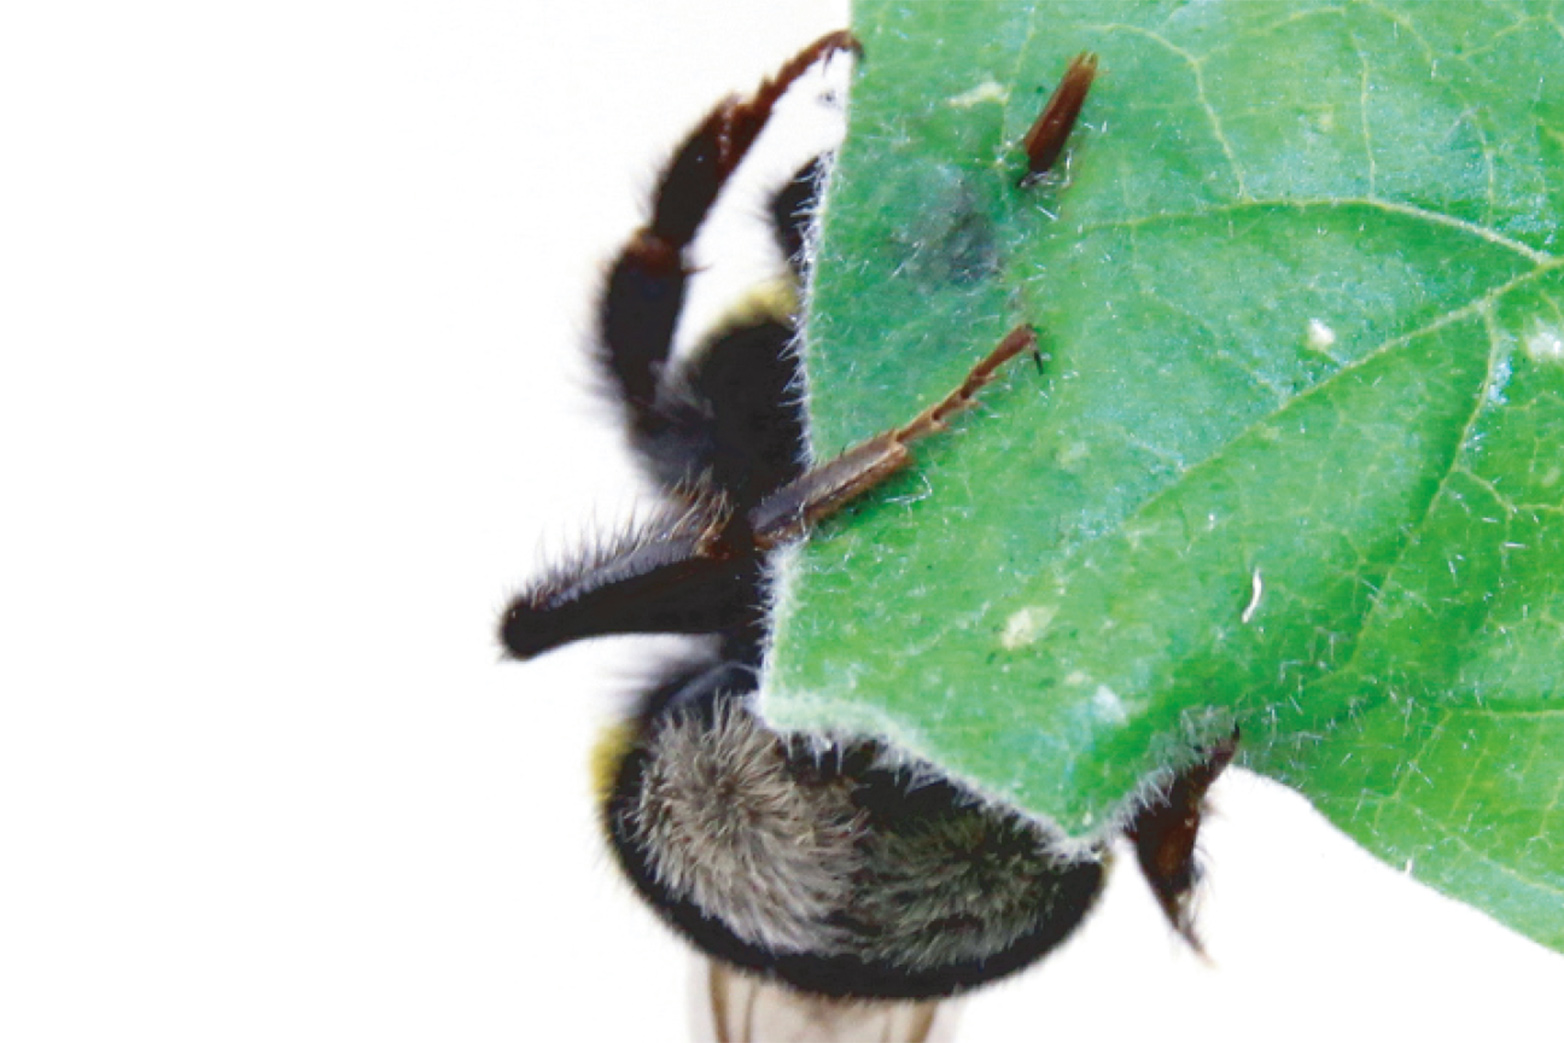 A bumblebee pierces a leaf with its tongue